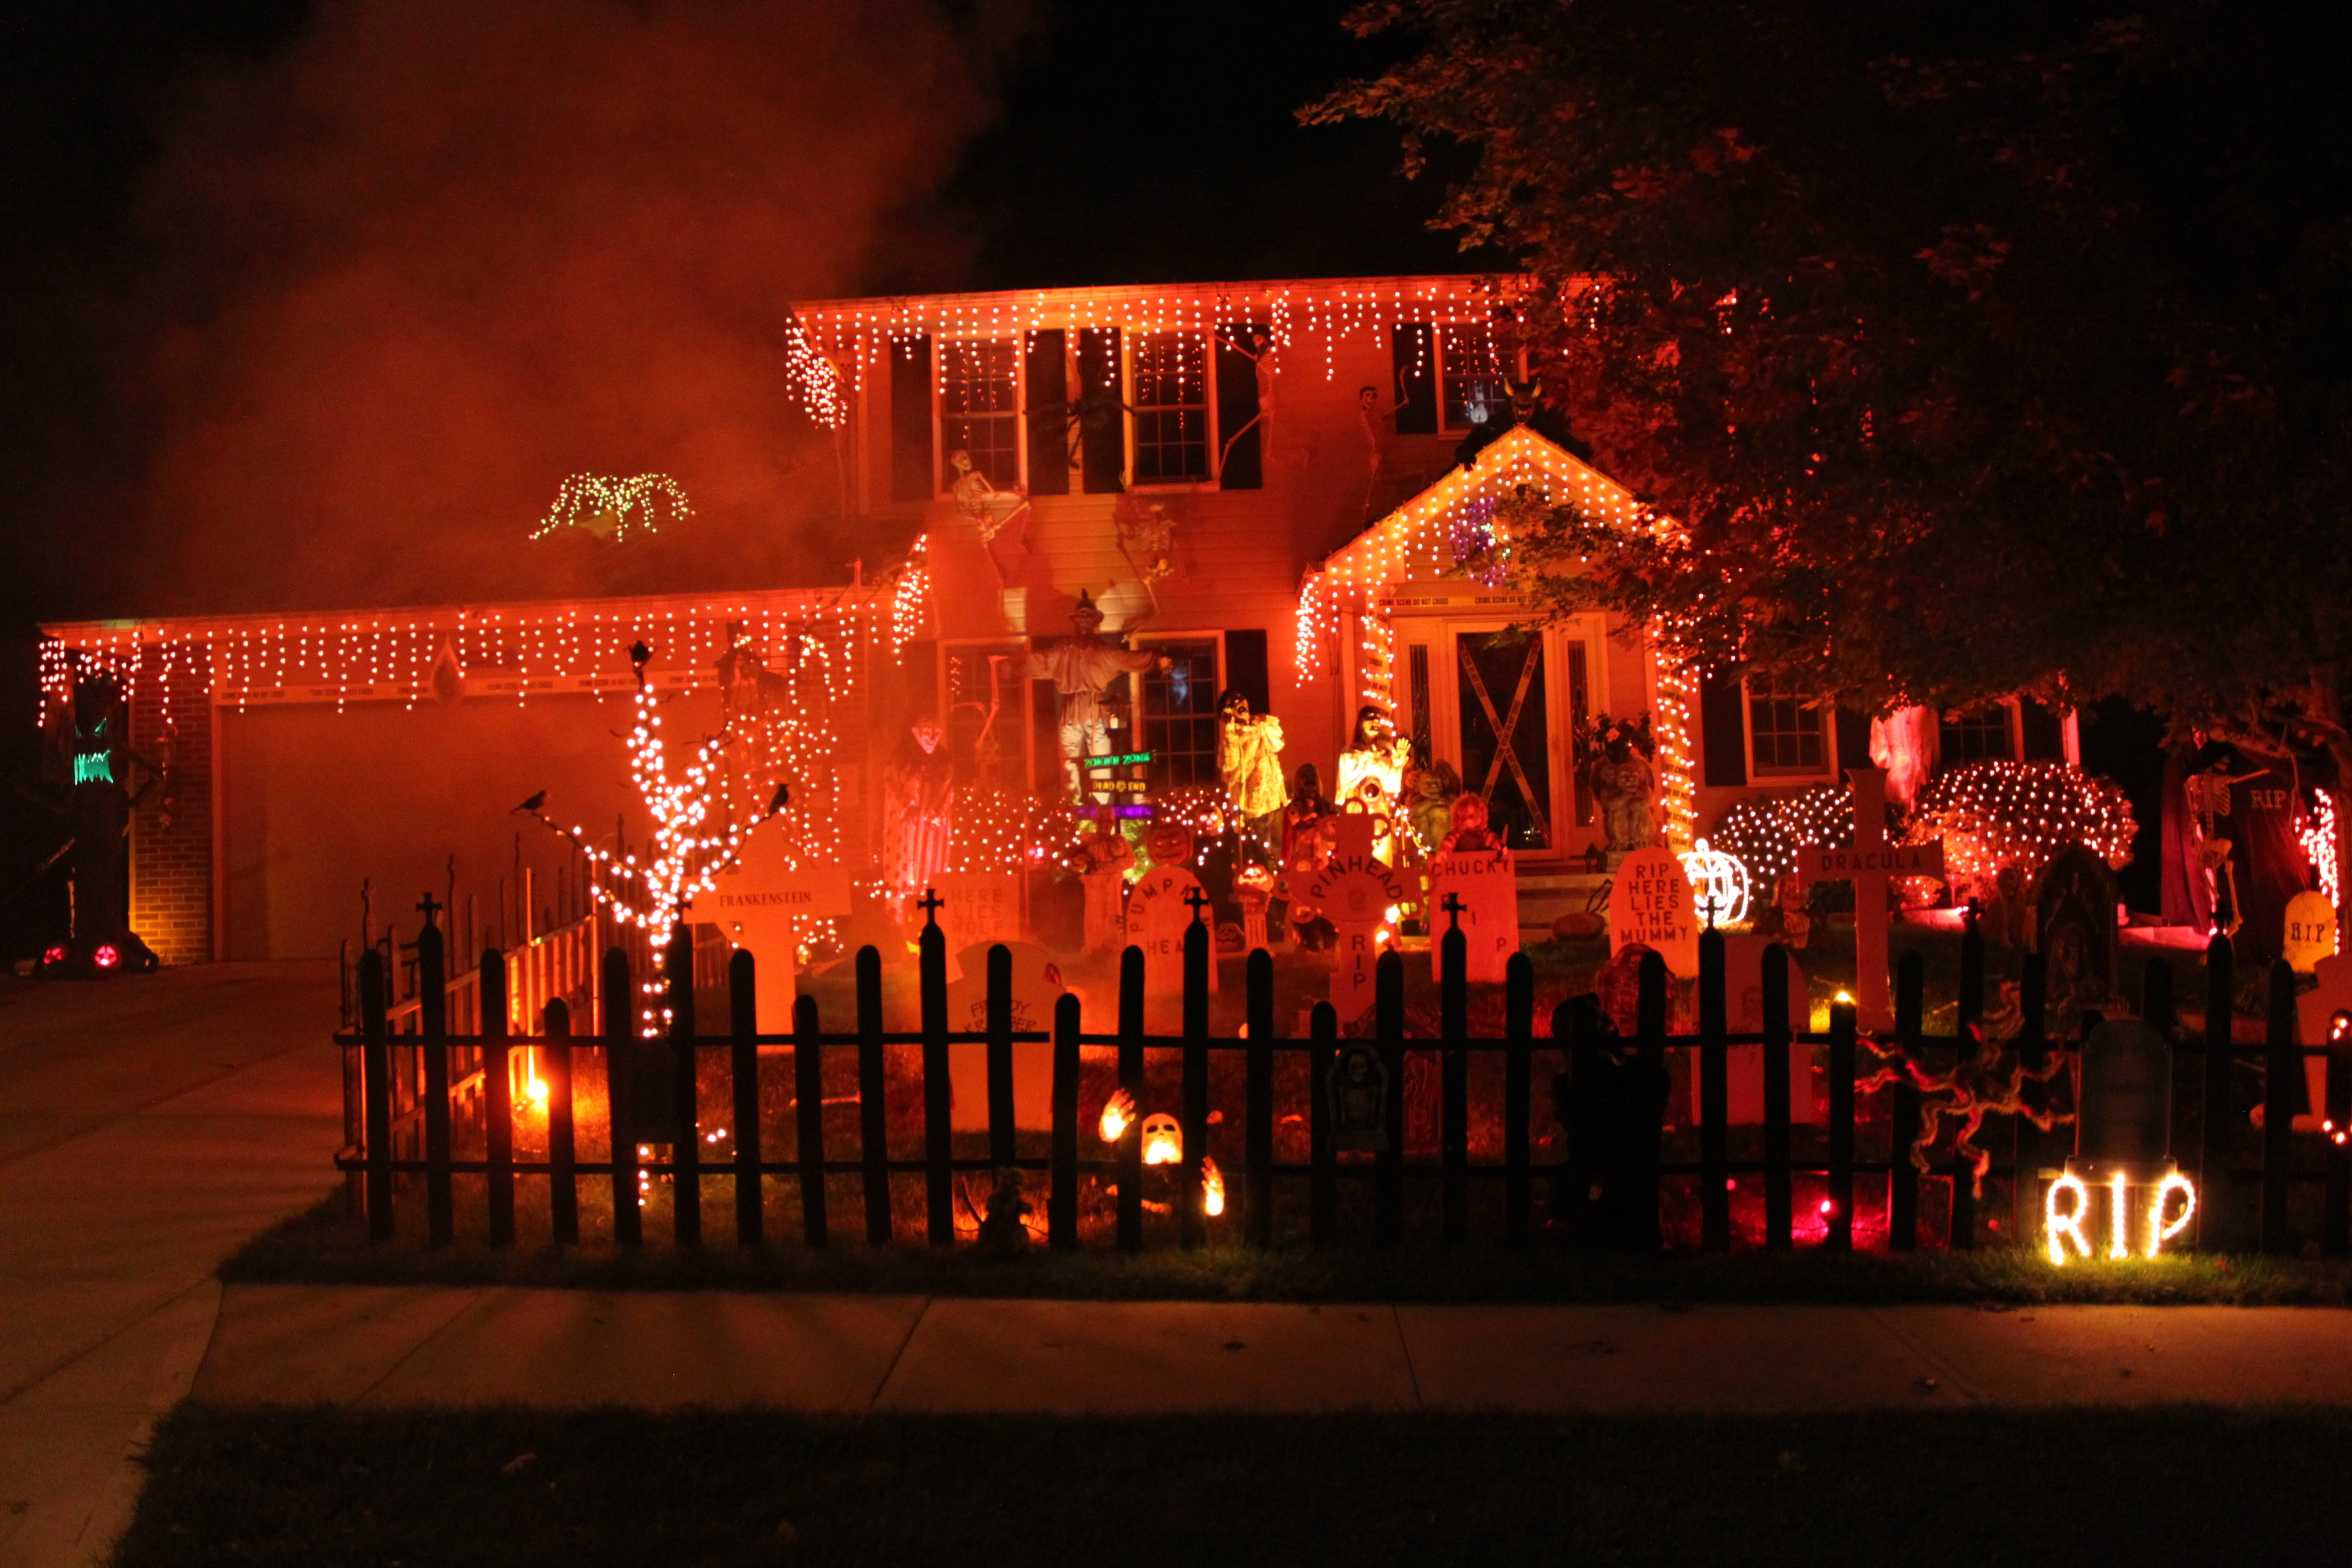 11 of the best haunted halloween houses from ulocal - modesto news